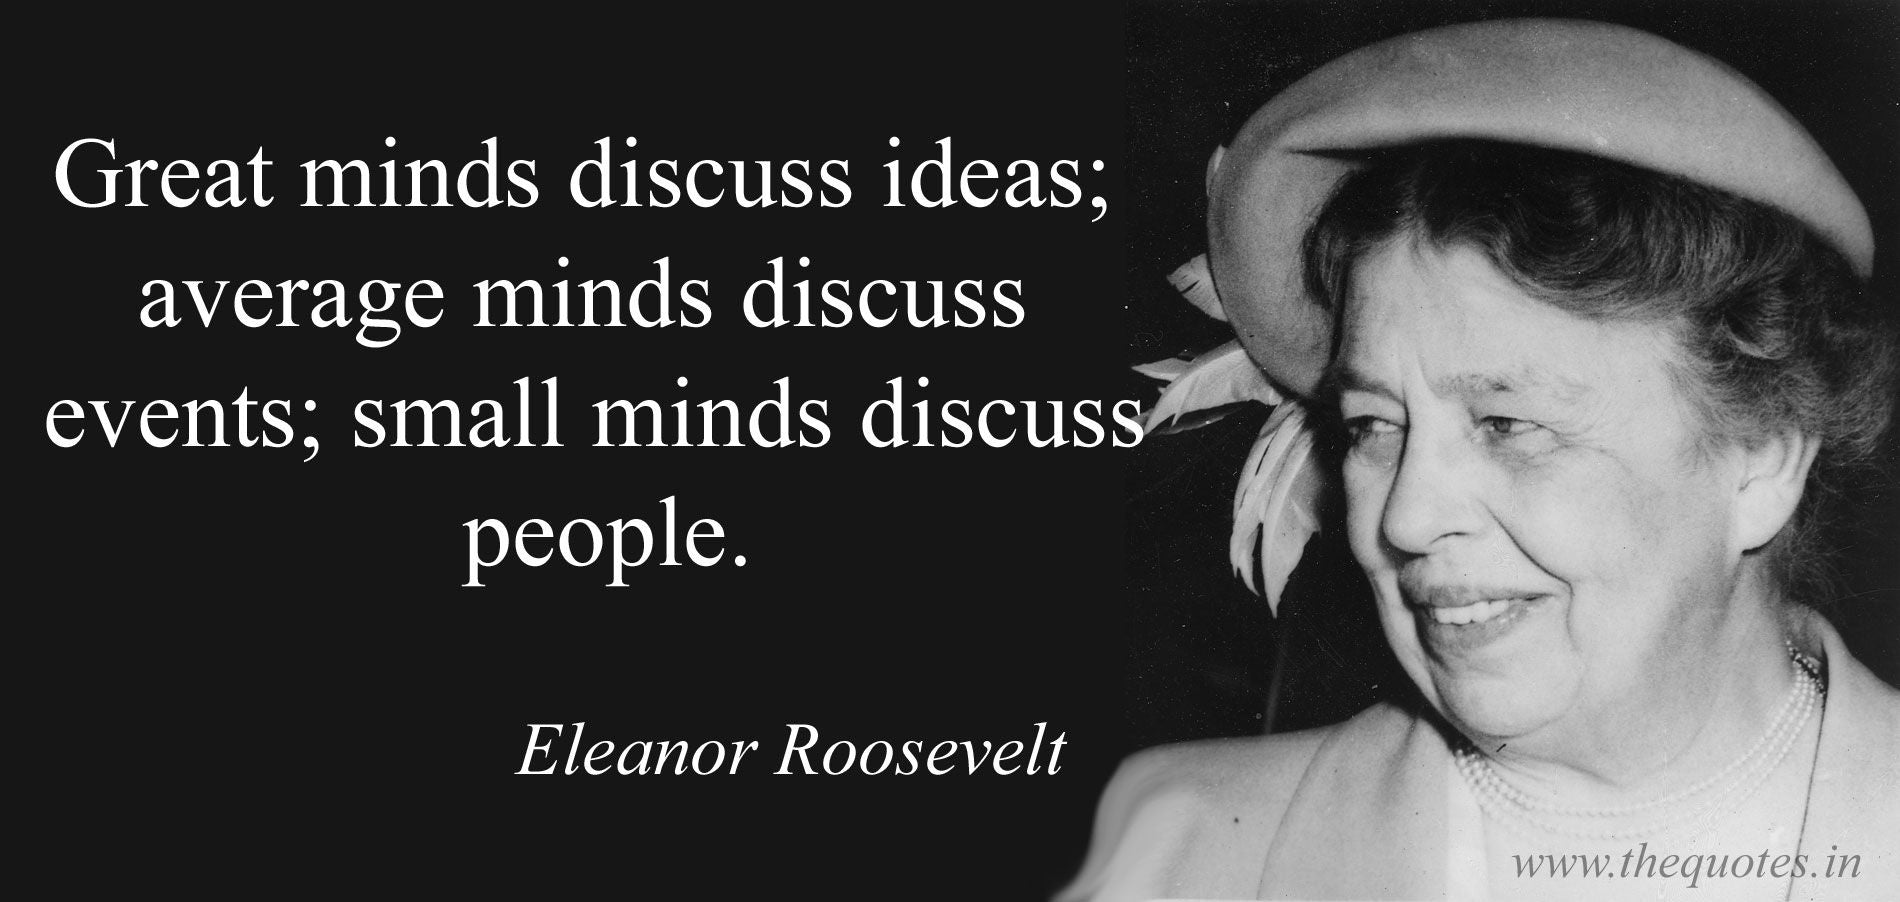 Great minds discuss ideas; small minds discuss events; smaller minds discuss people quote Eleanor Roosevelt